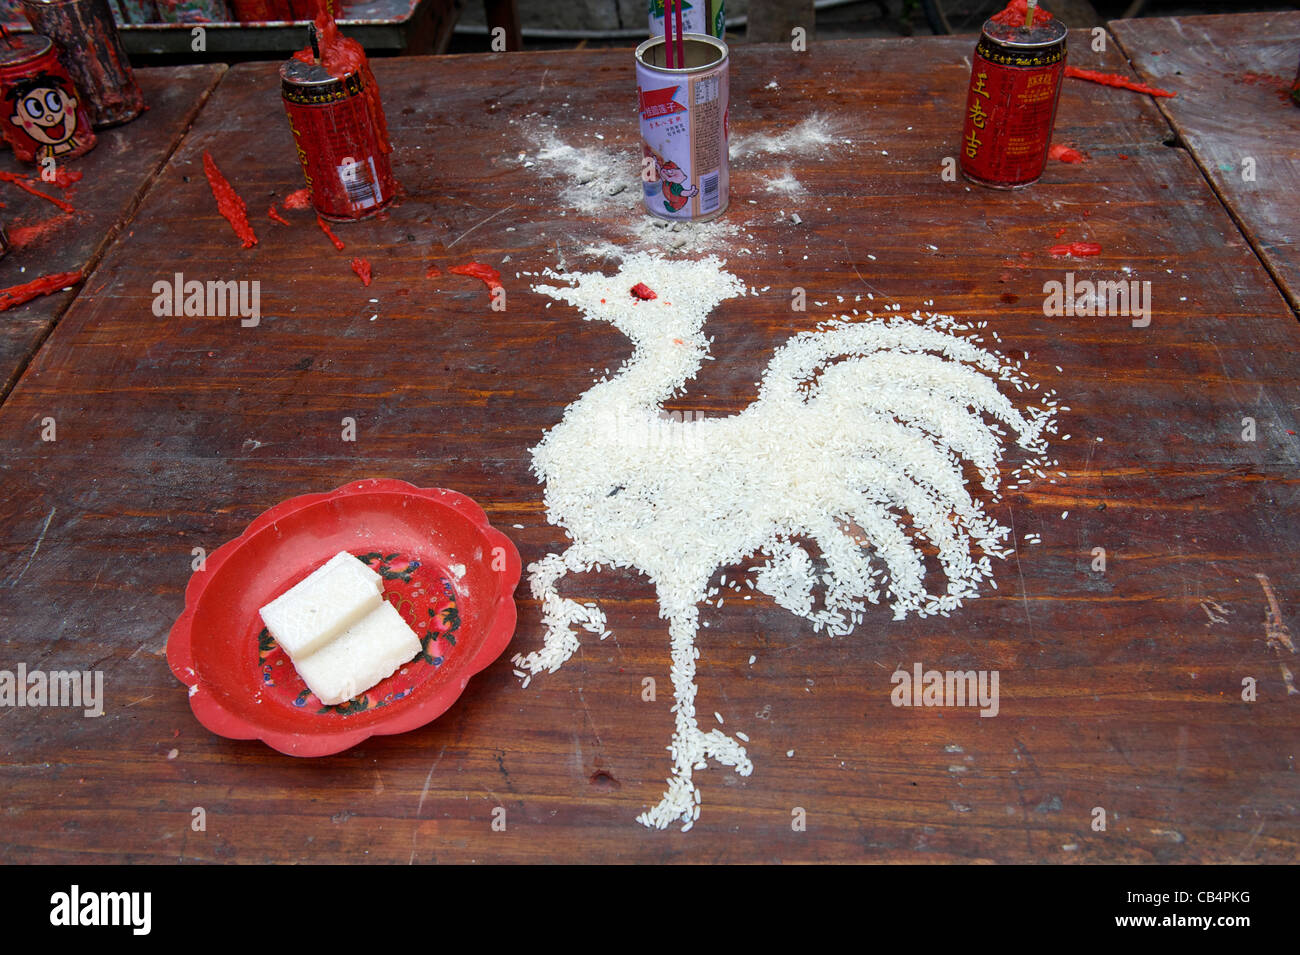 Rooster - a symbolic animal of the birth year - made with rice at a Taoist temple during Xiayuan Festival in China. - Stock Image